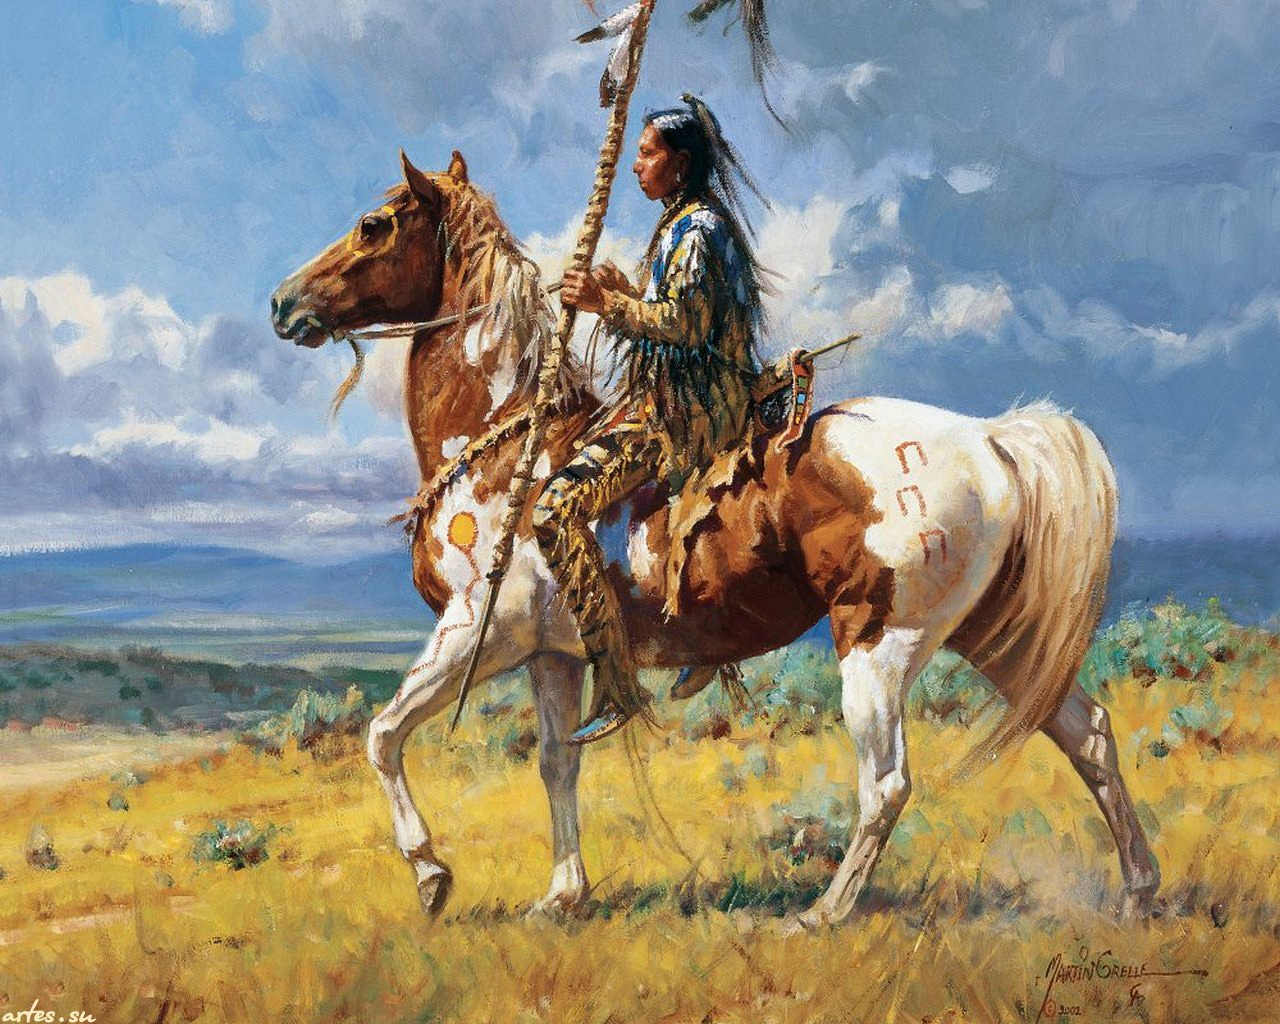 Native American Indian Wallpaper